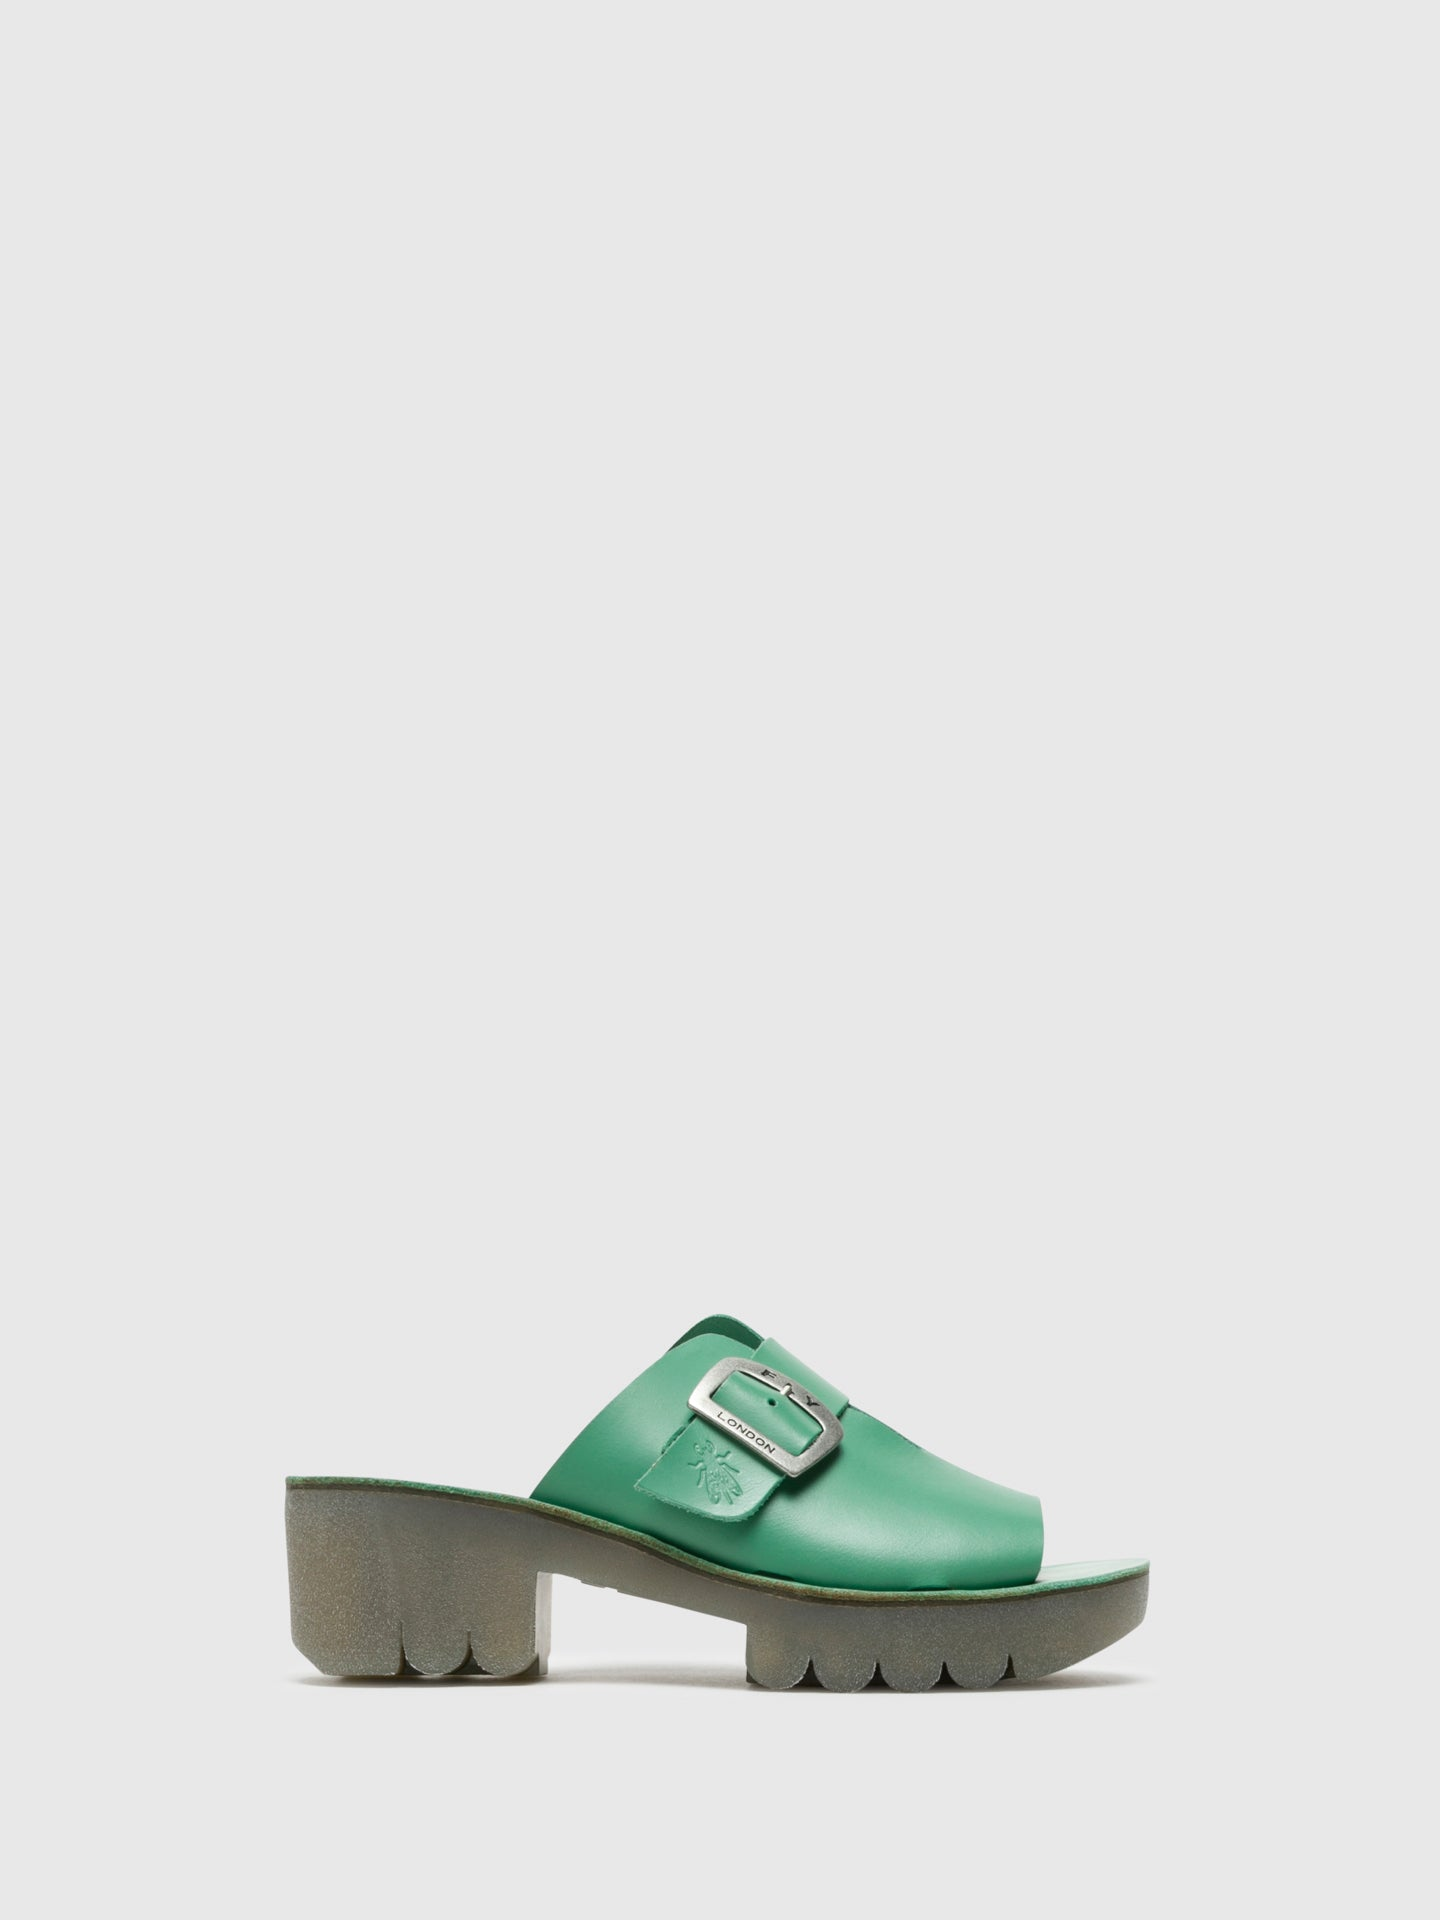 Fly London Green Chunky Heel Mules